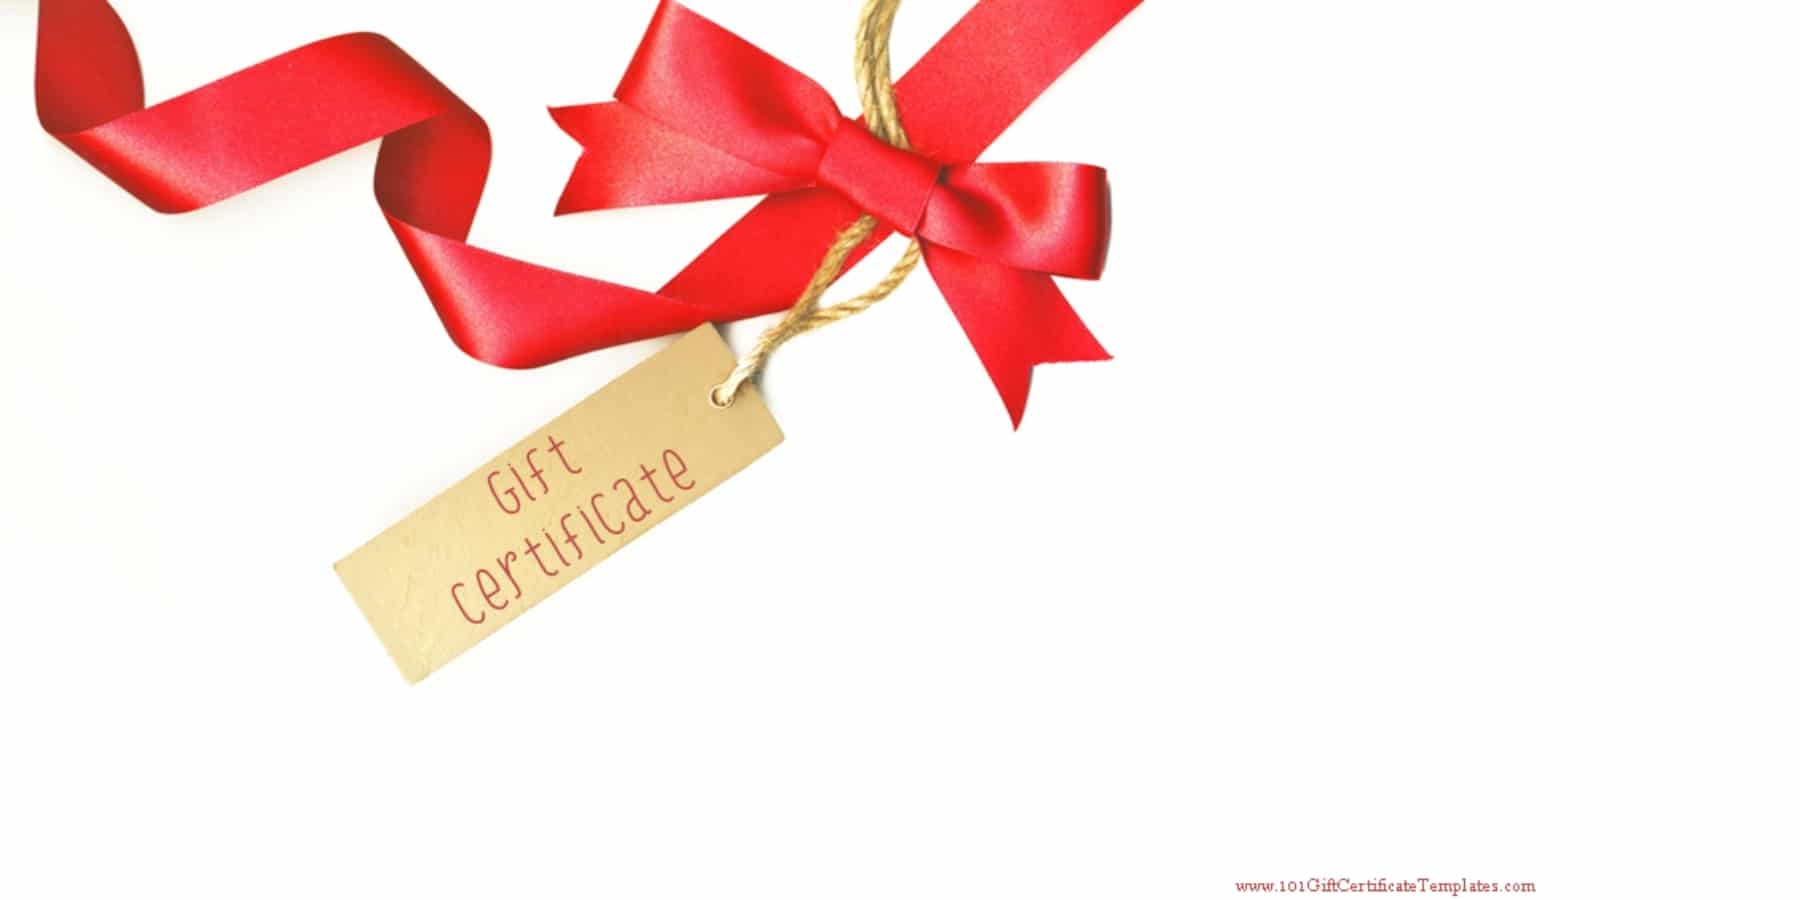 Gift Card Which Can Be Customized In Any Way With Our Gift Card Maker  Make Your Own Voucher